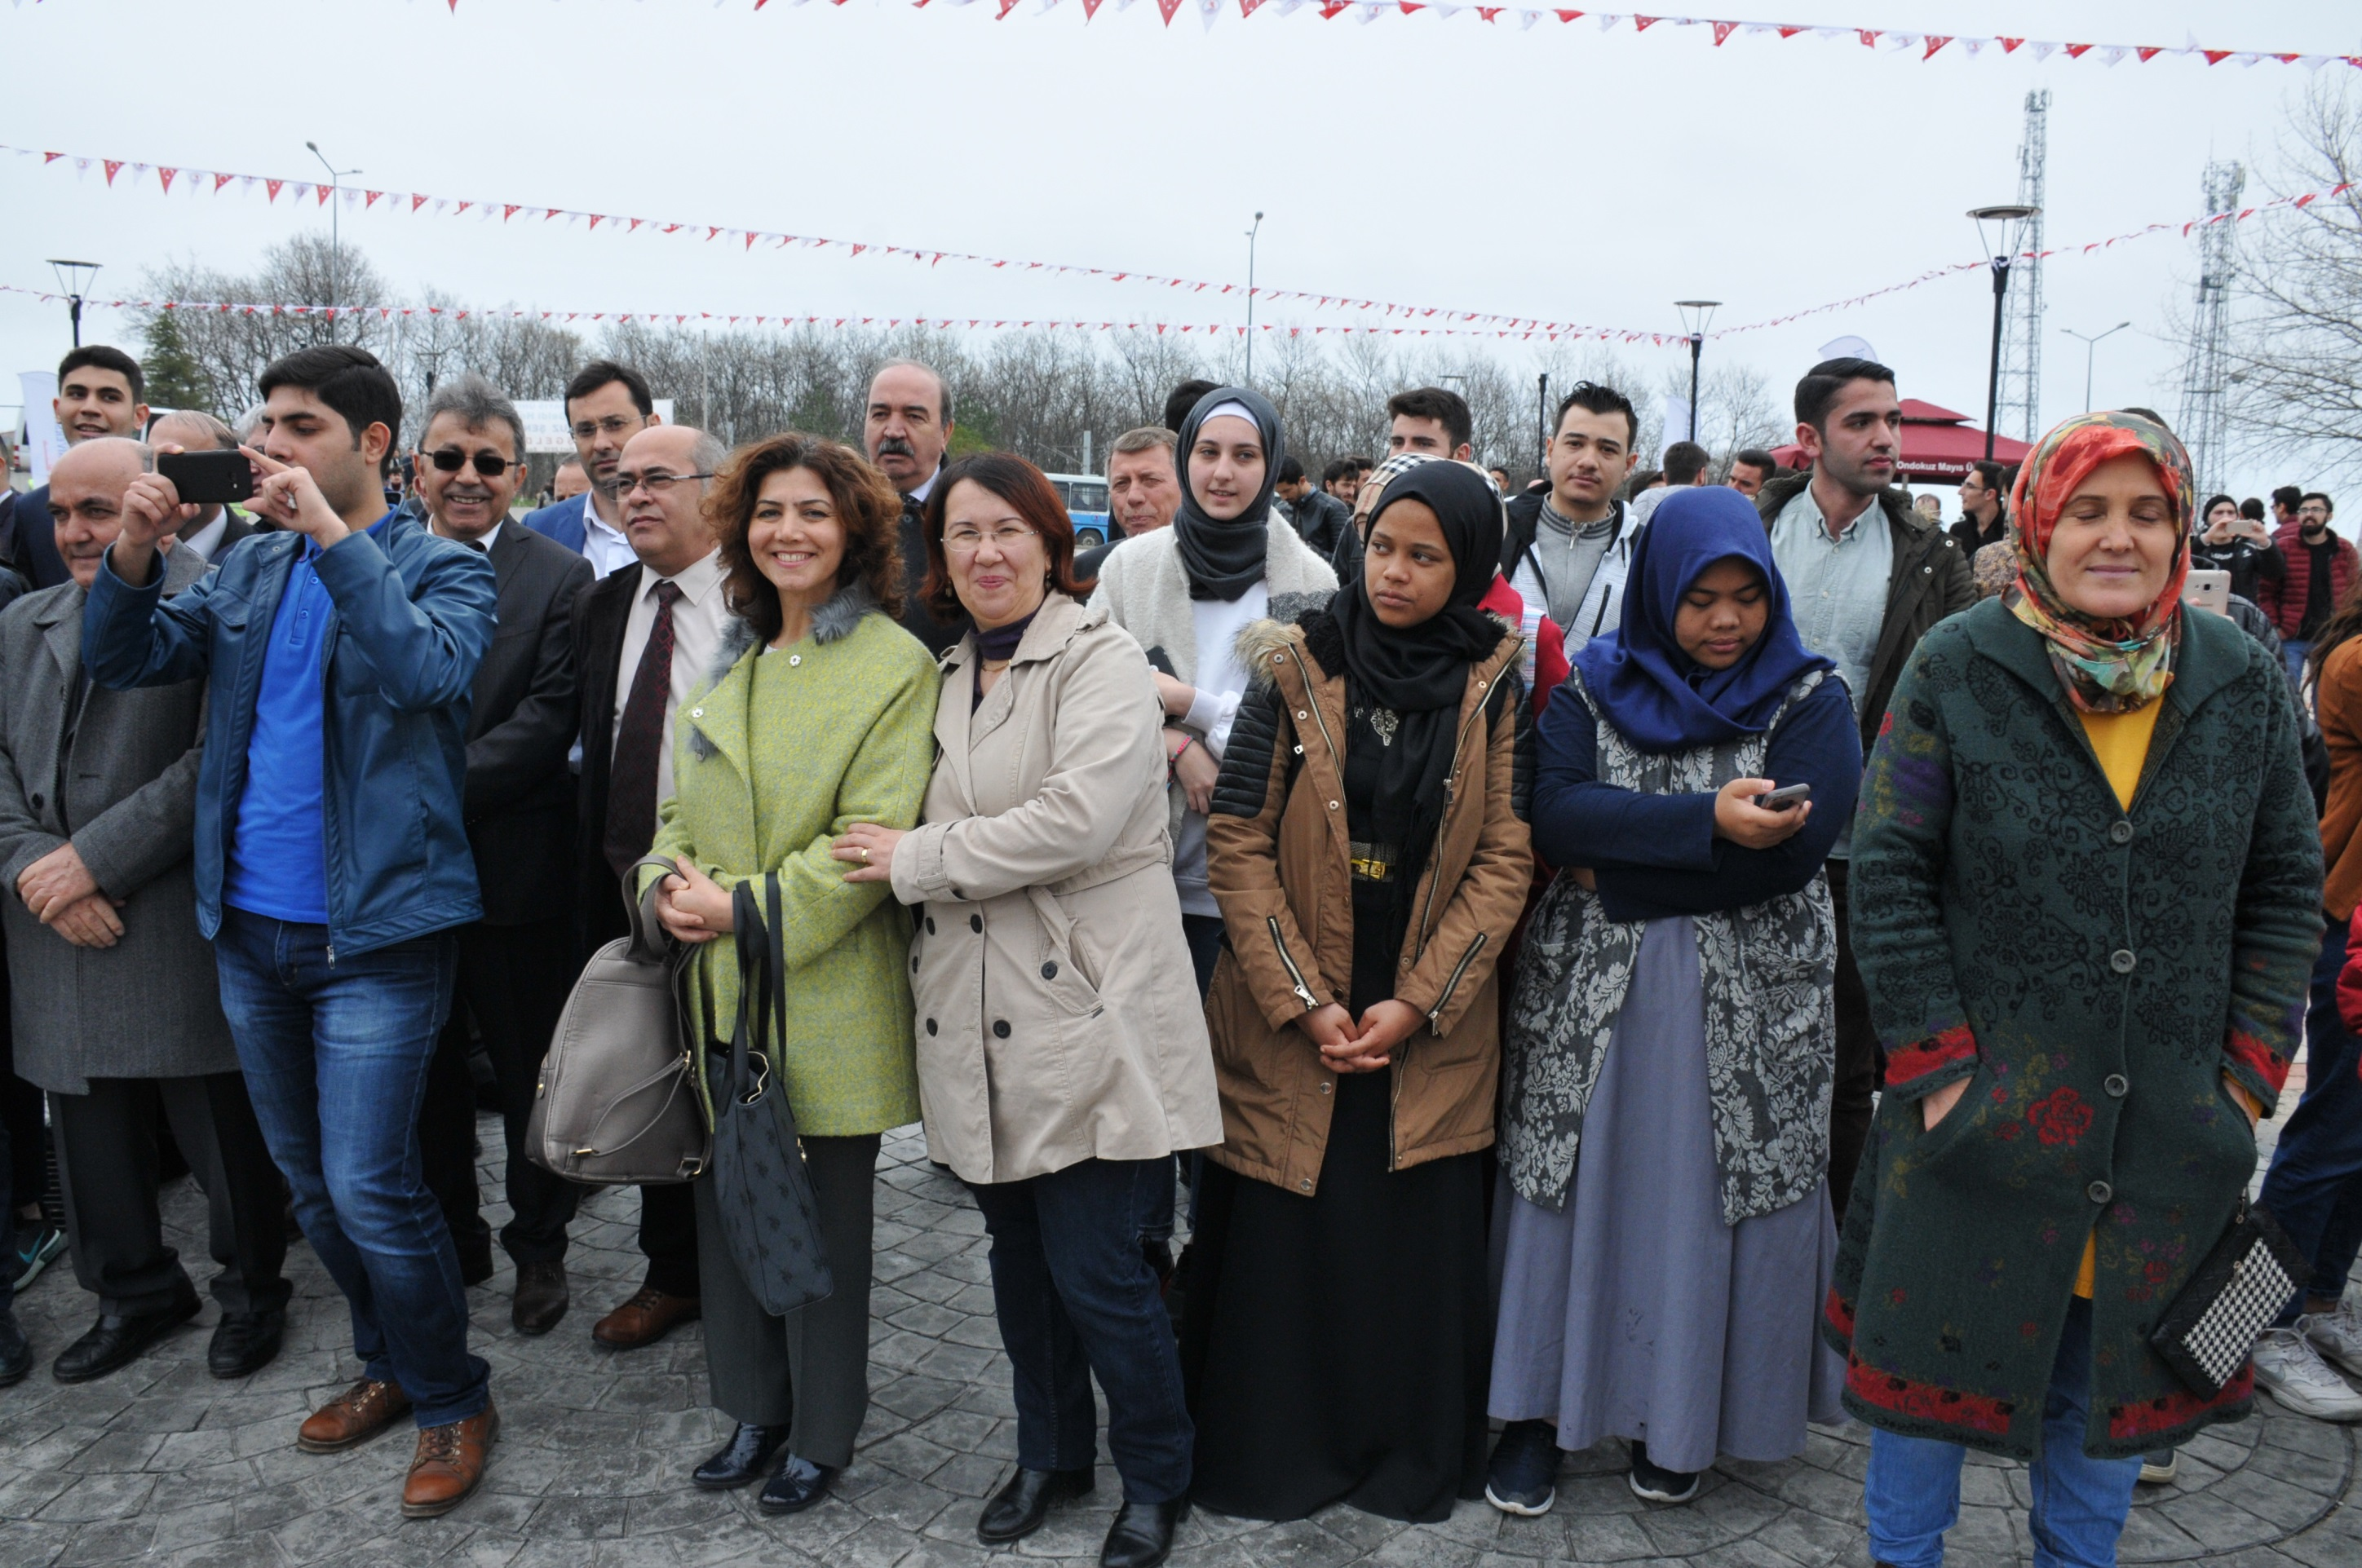 http://www.omu.edu.tr/sites/default/files/files/omu_family_enthusiastically_celebrated_newroz/dsc_0180.jpg